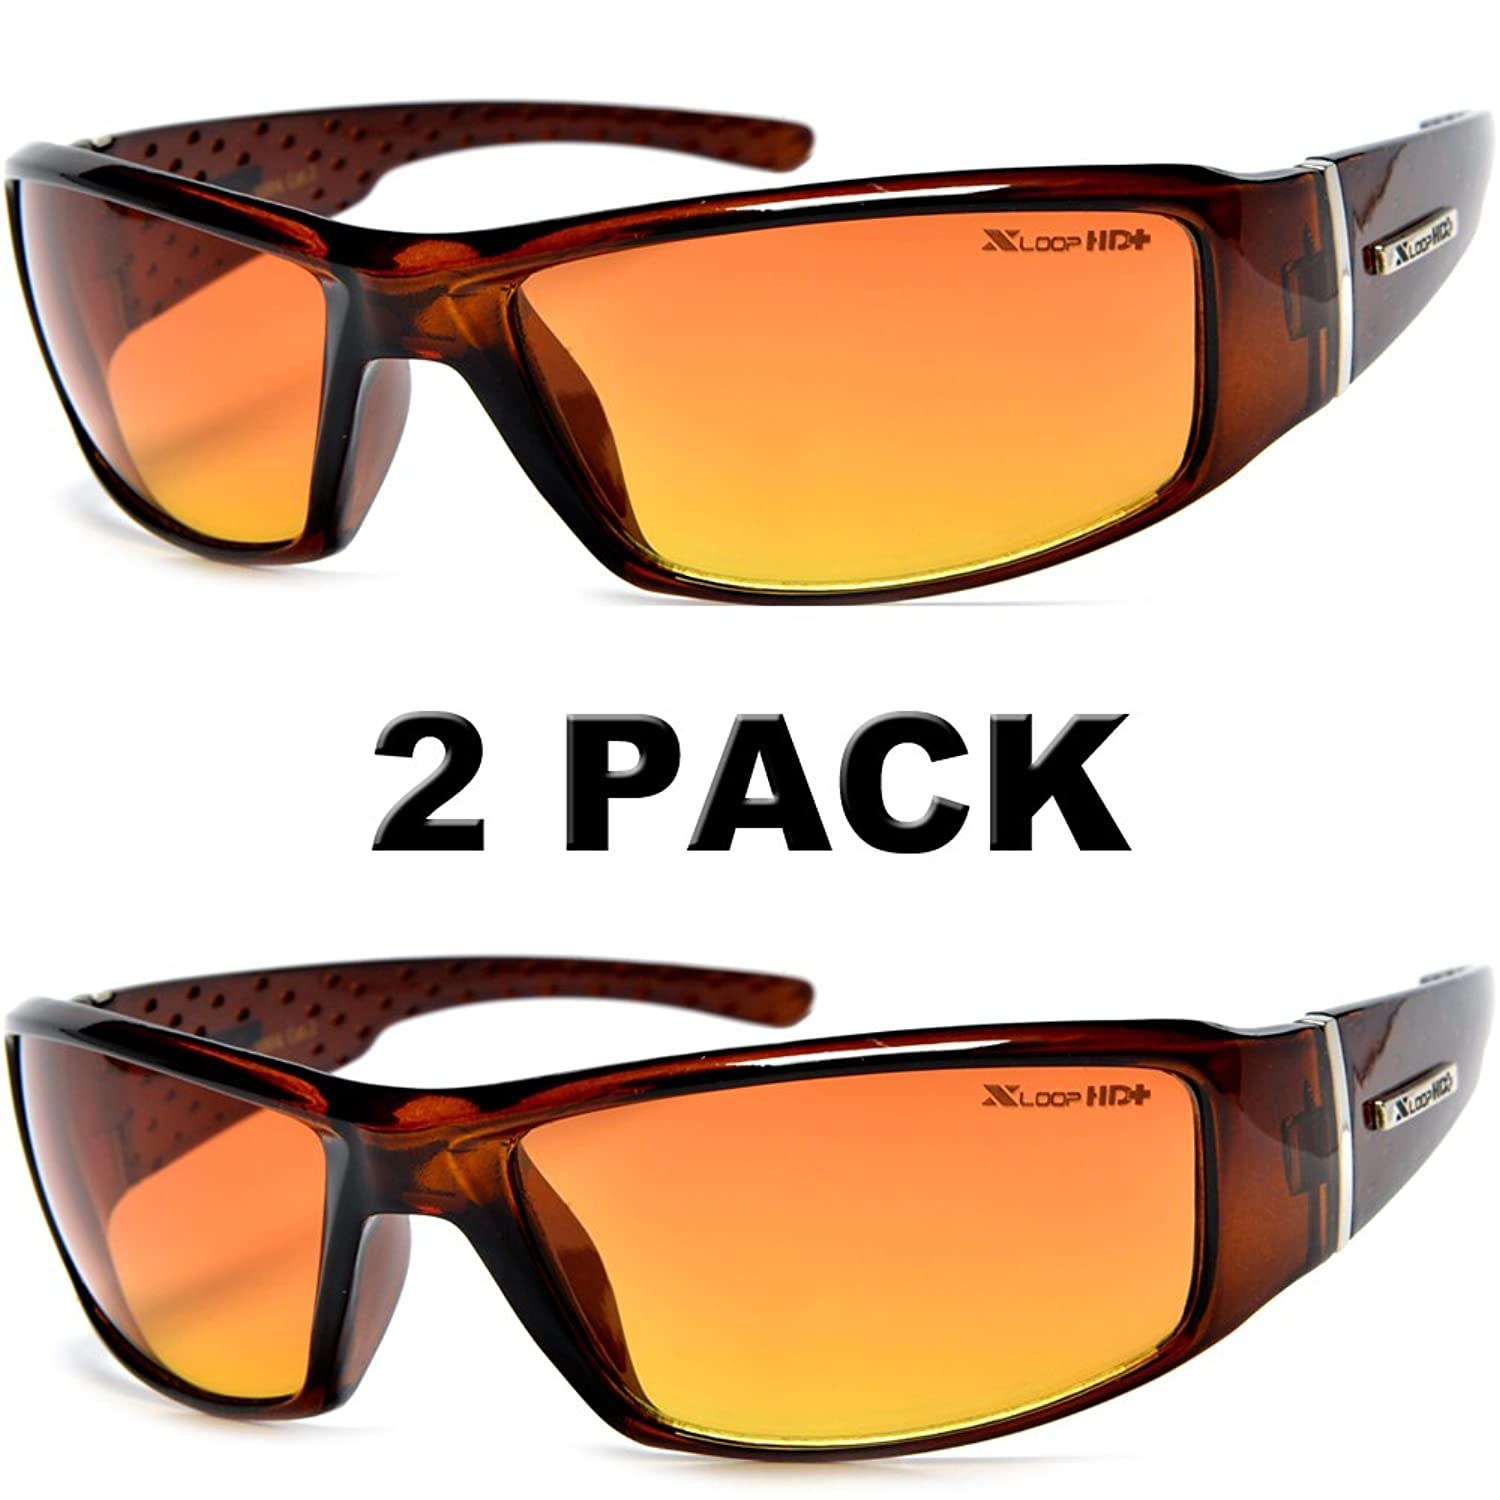 74adf3c332 HD Vision Anti-Glare Driving Glasses X-Loop 2 PACK w  Free Micro ...